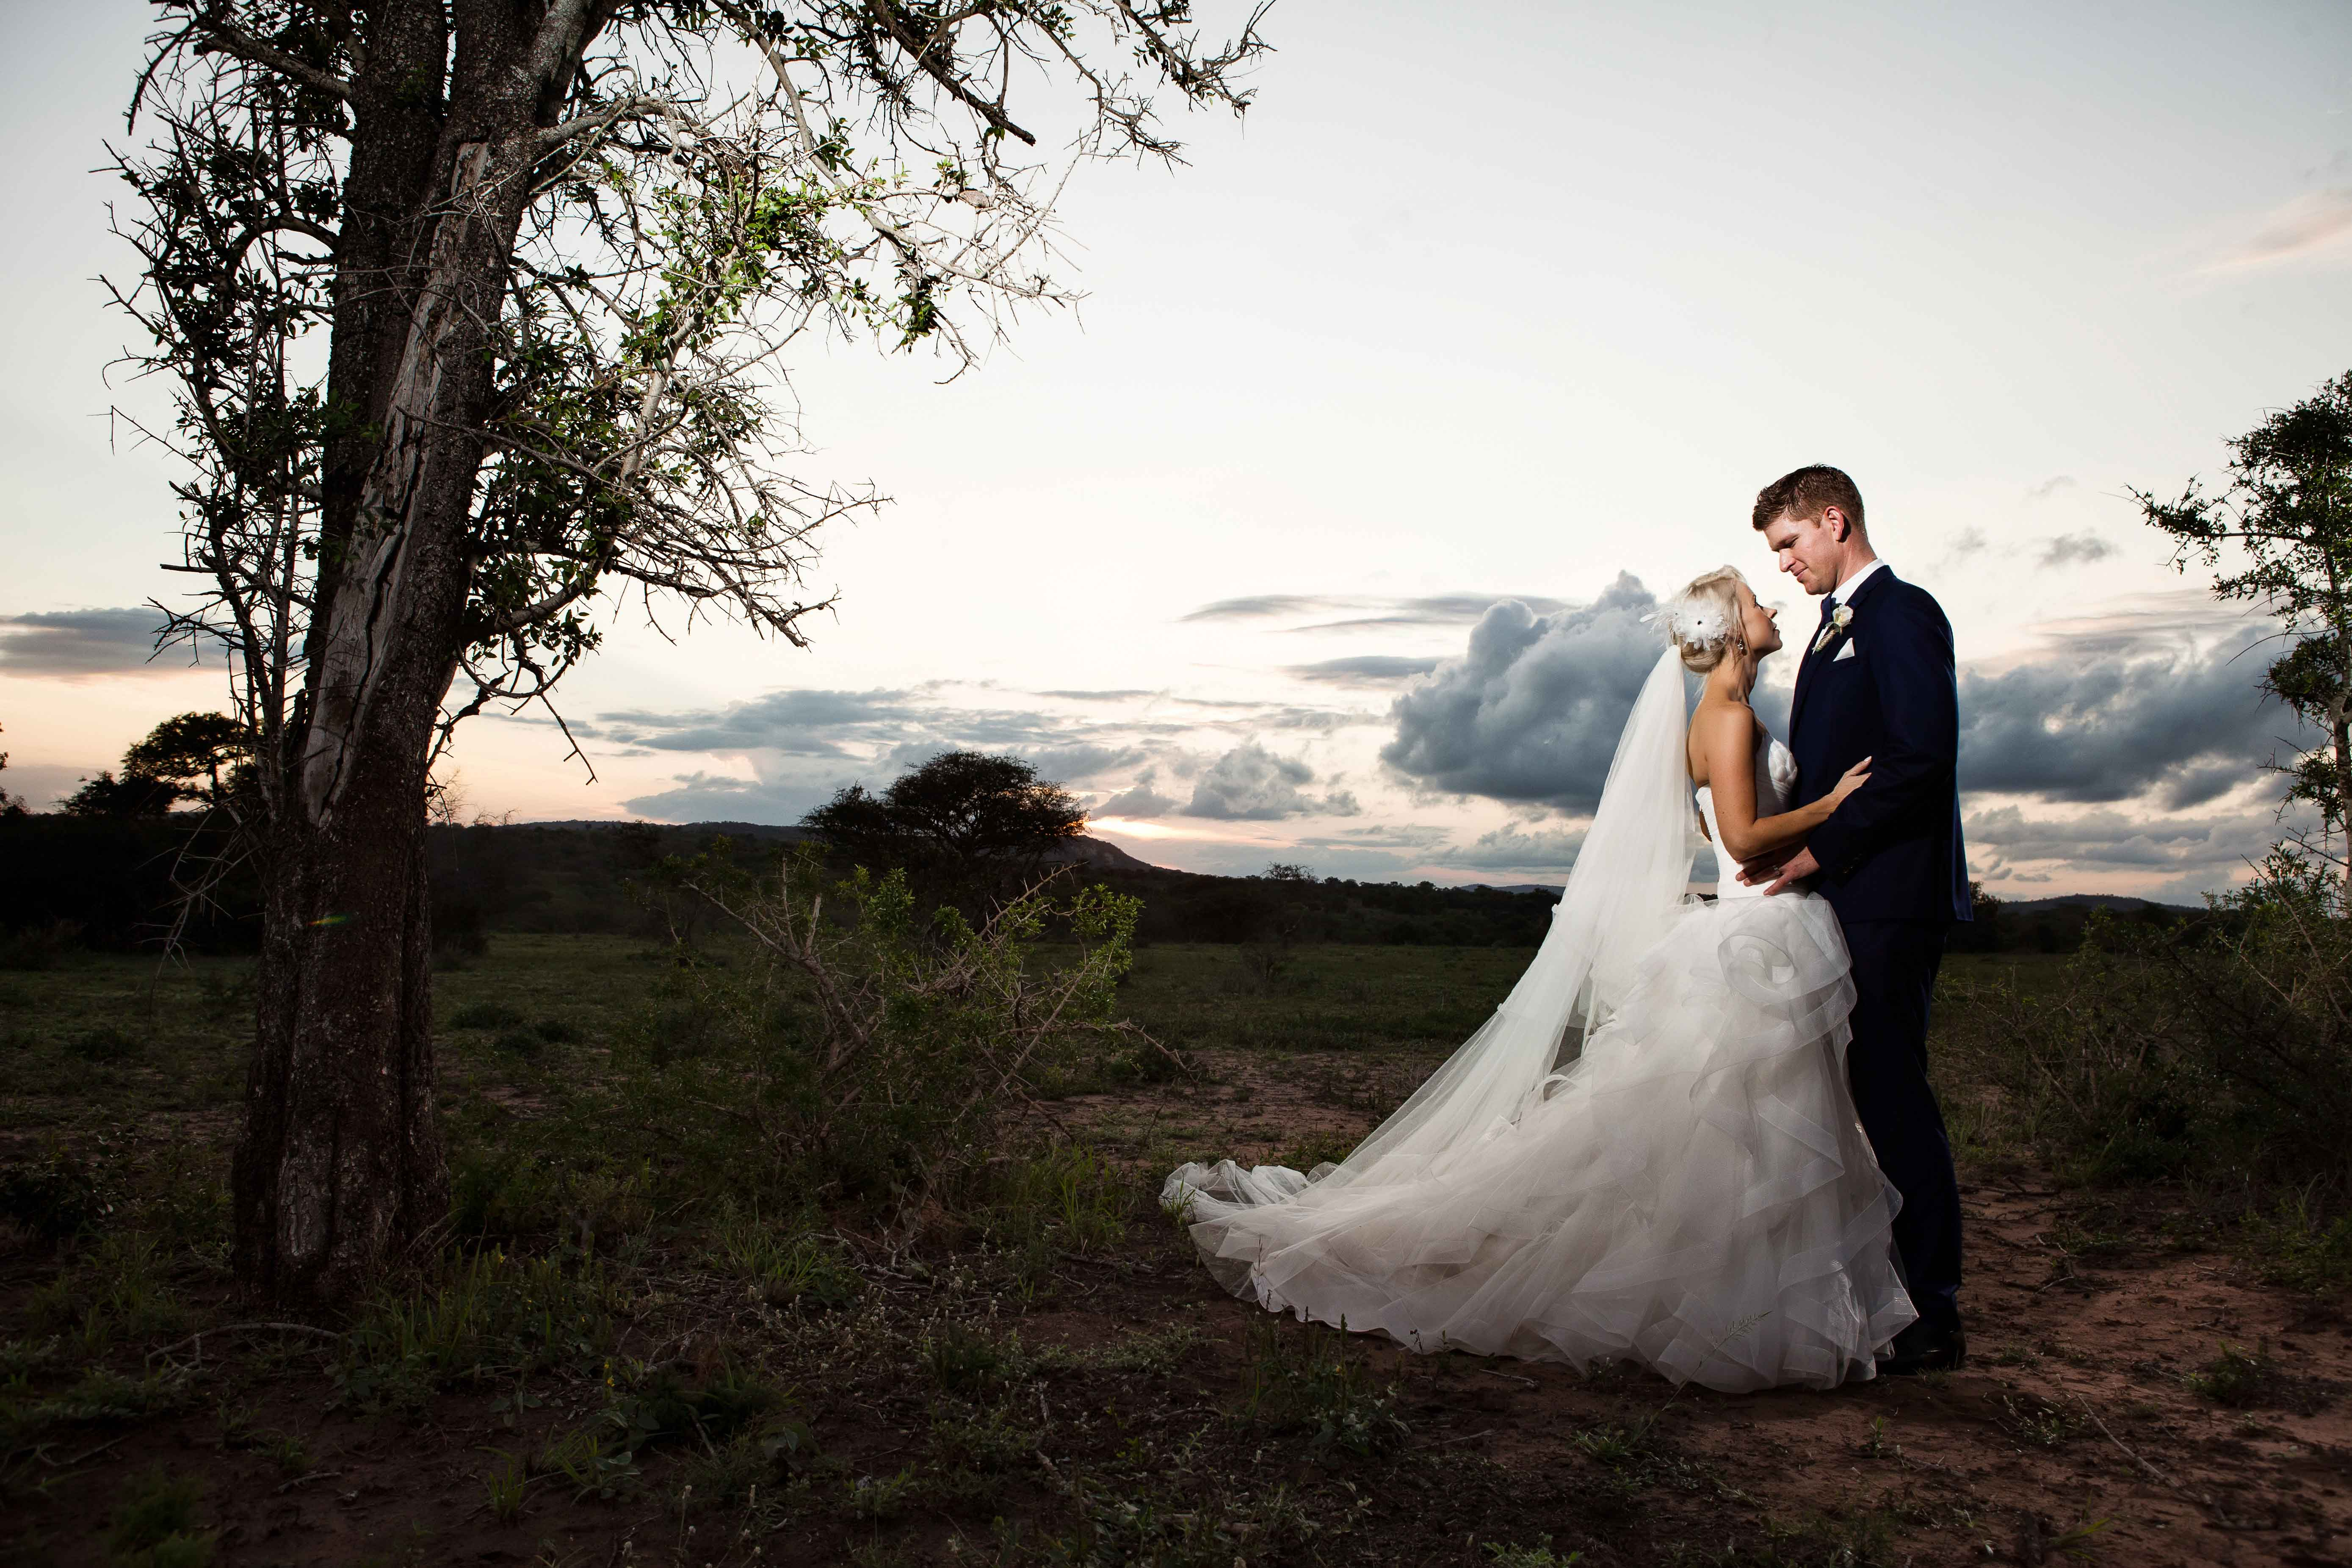 Bridal gown and navy blue suit for groom at sunset